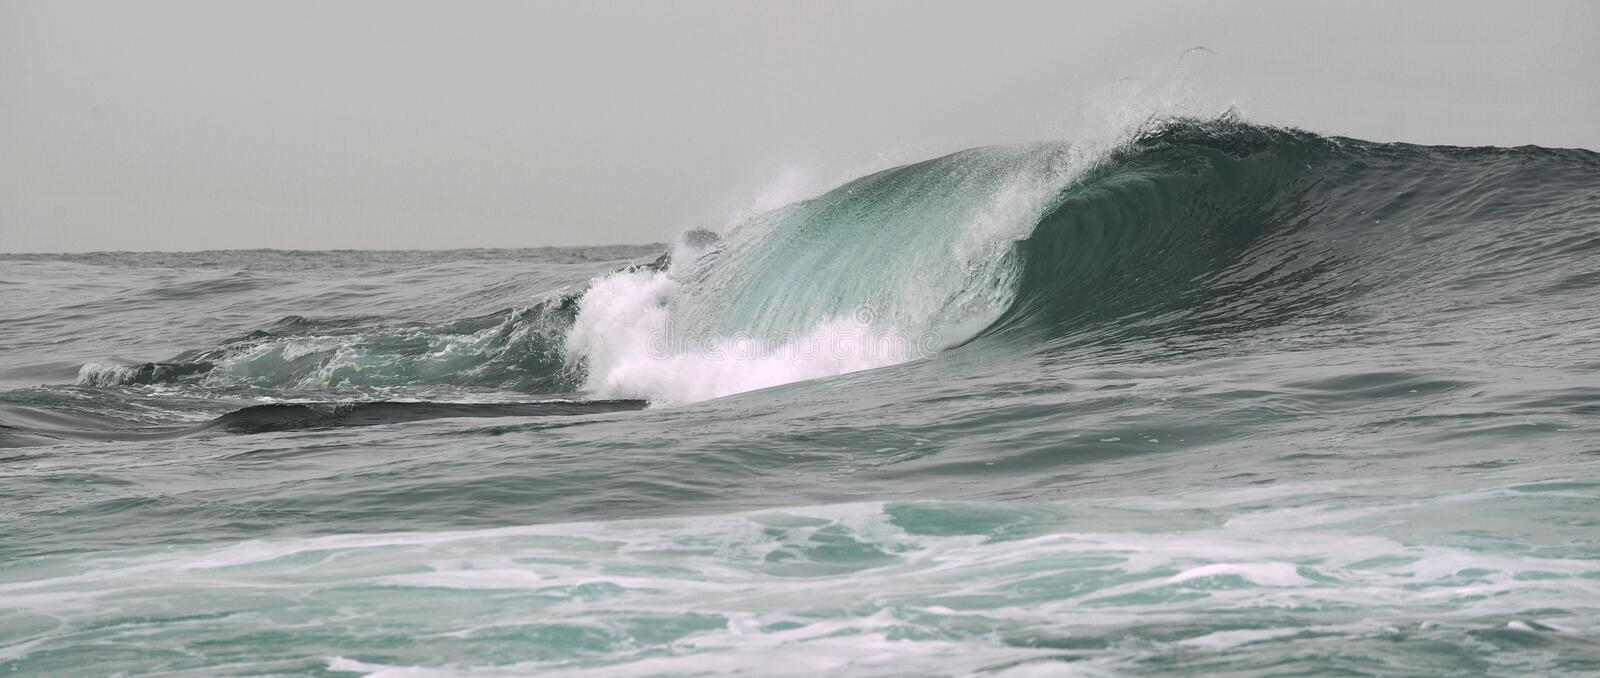 Wave breaks on a shallow bank. Wave on the surface of the ocean. Wave breaks on a shallow bank stock photography